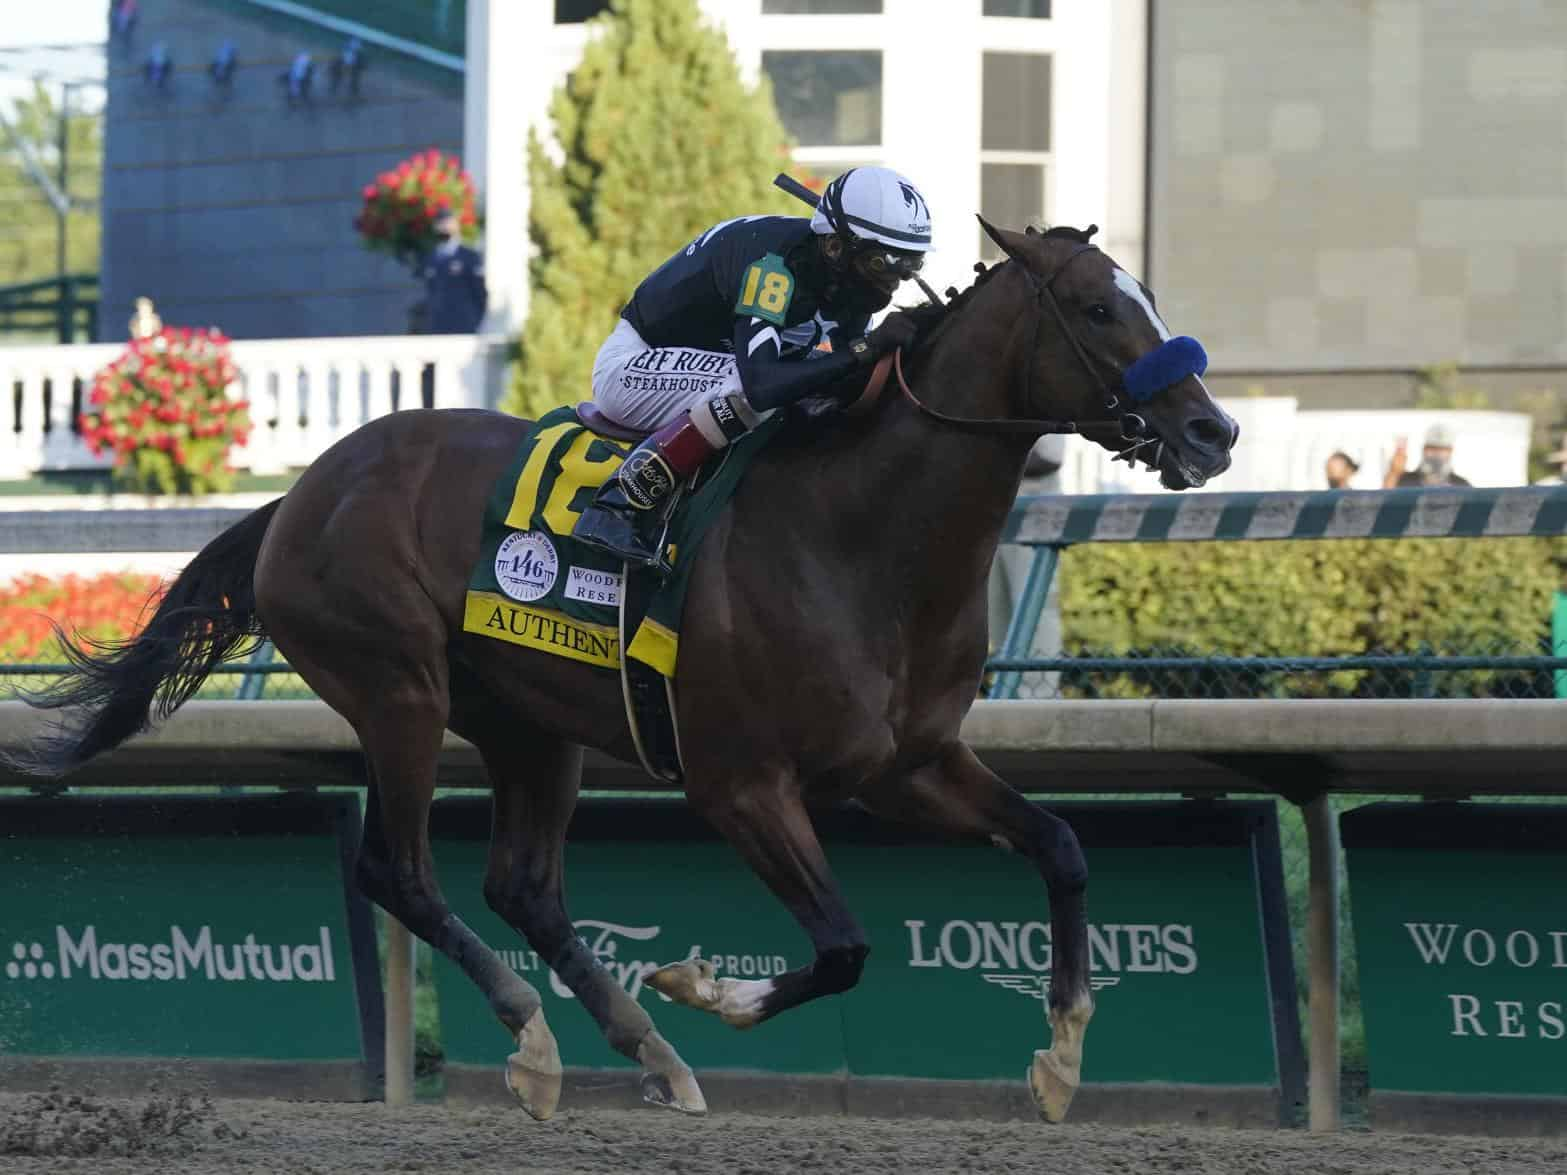 To Win The Kentucky Derby: Authentic Upsets Tiz The Law